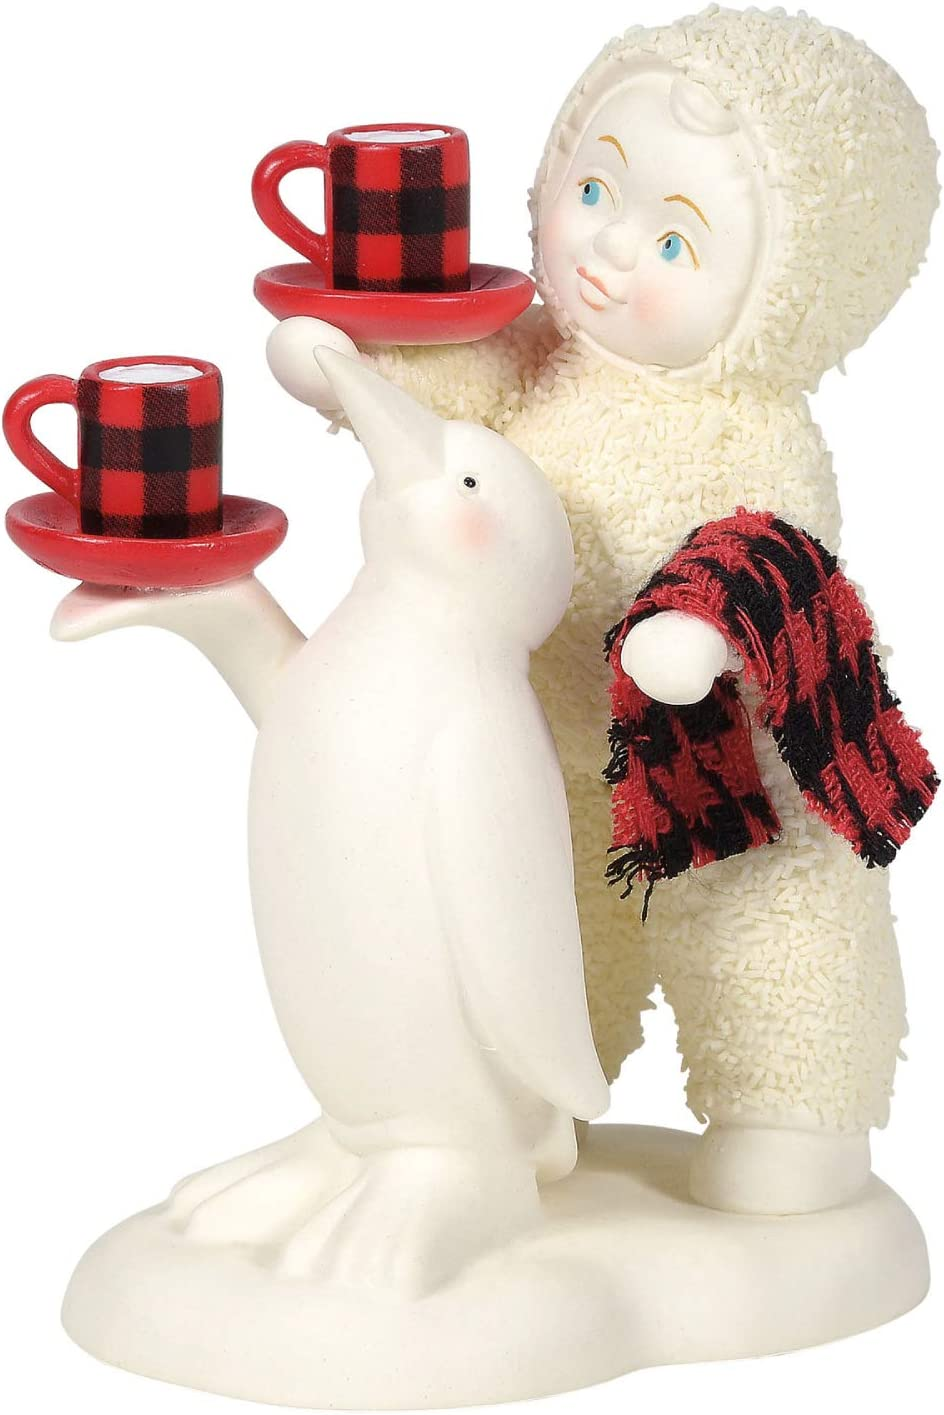 Department 56 Large discharge sale Snowbabies Classics Cocoa Figurine Ranking TOP18 4.25 Served is